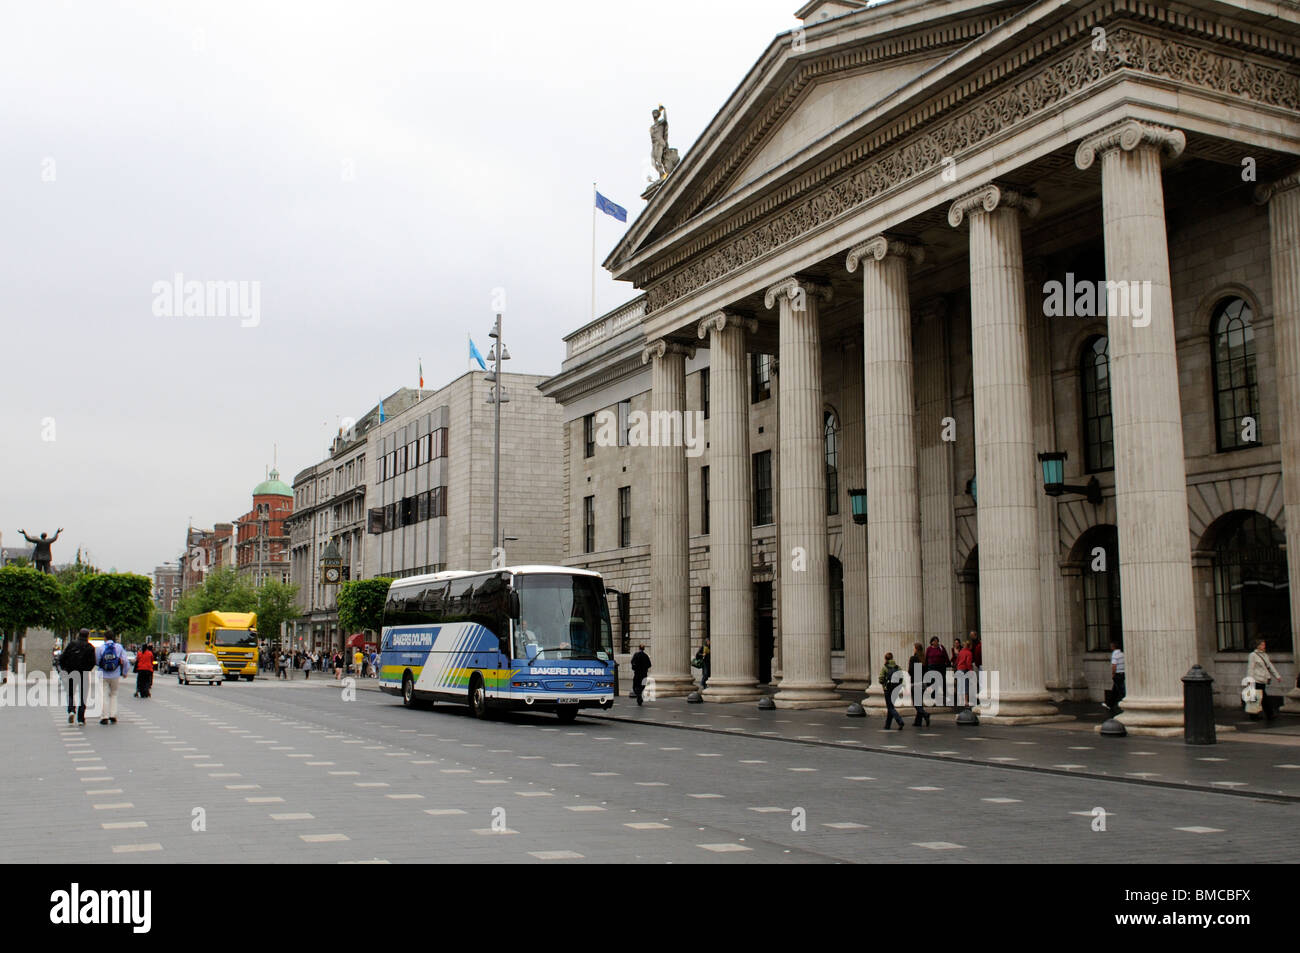 A Bakers Dolphin tour bus passing The General Post Office in O'Connell Street Dublin Ireland. bakers Dolphin - Stock Image